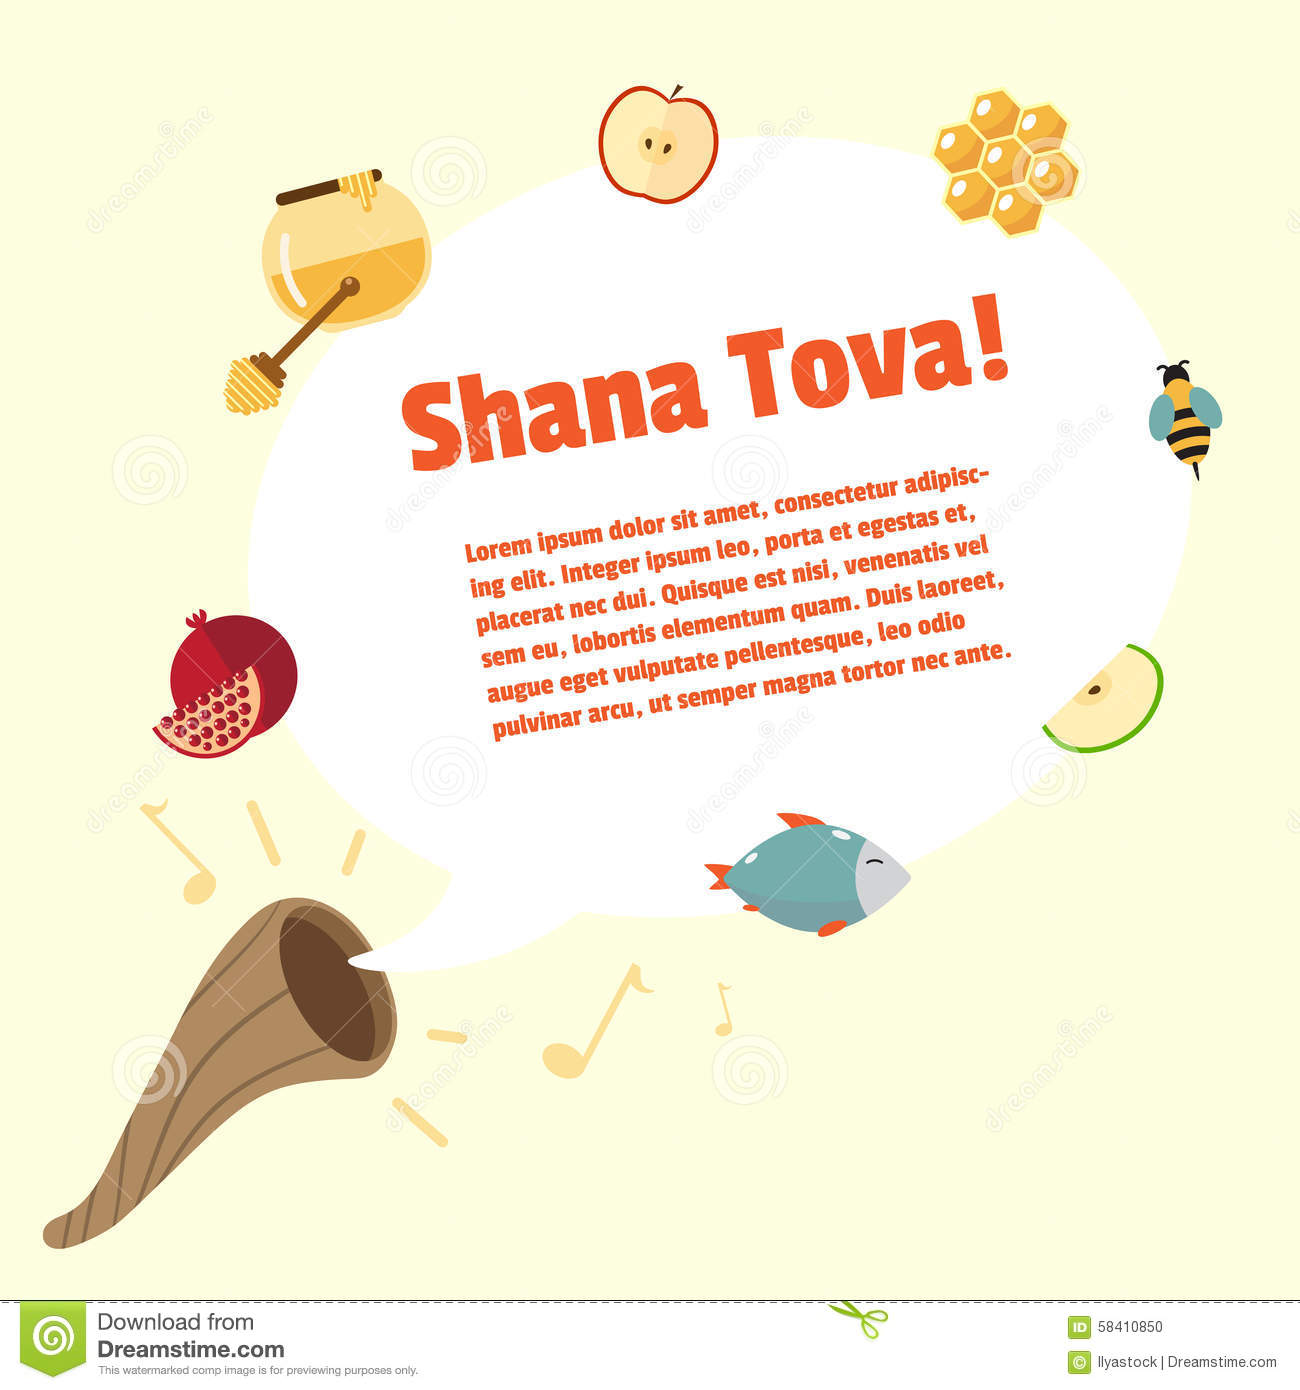 Shana tova rosh hashanah jewish new year vector greeting card shana tova rosh hashanah jewish new year vector greeting card kristyandbryce Choice Image